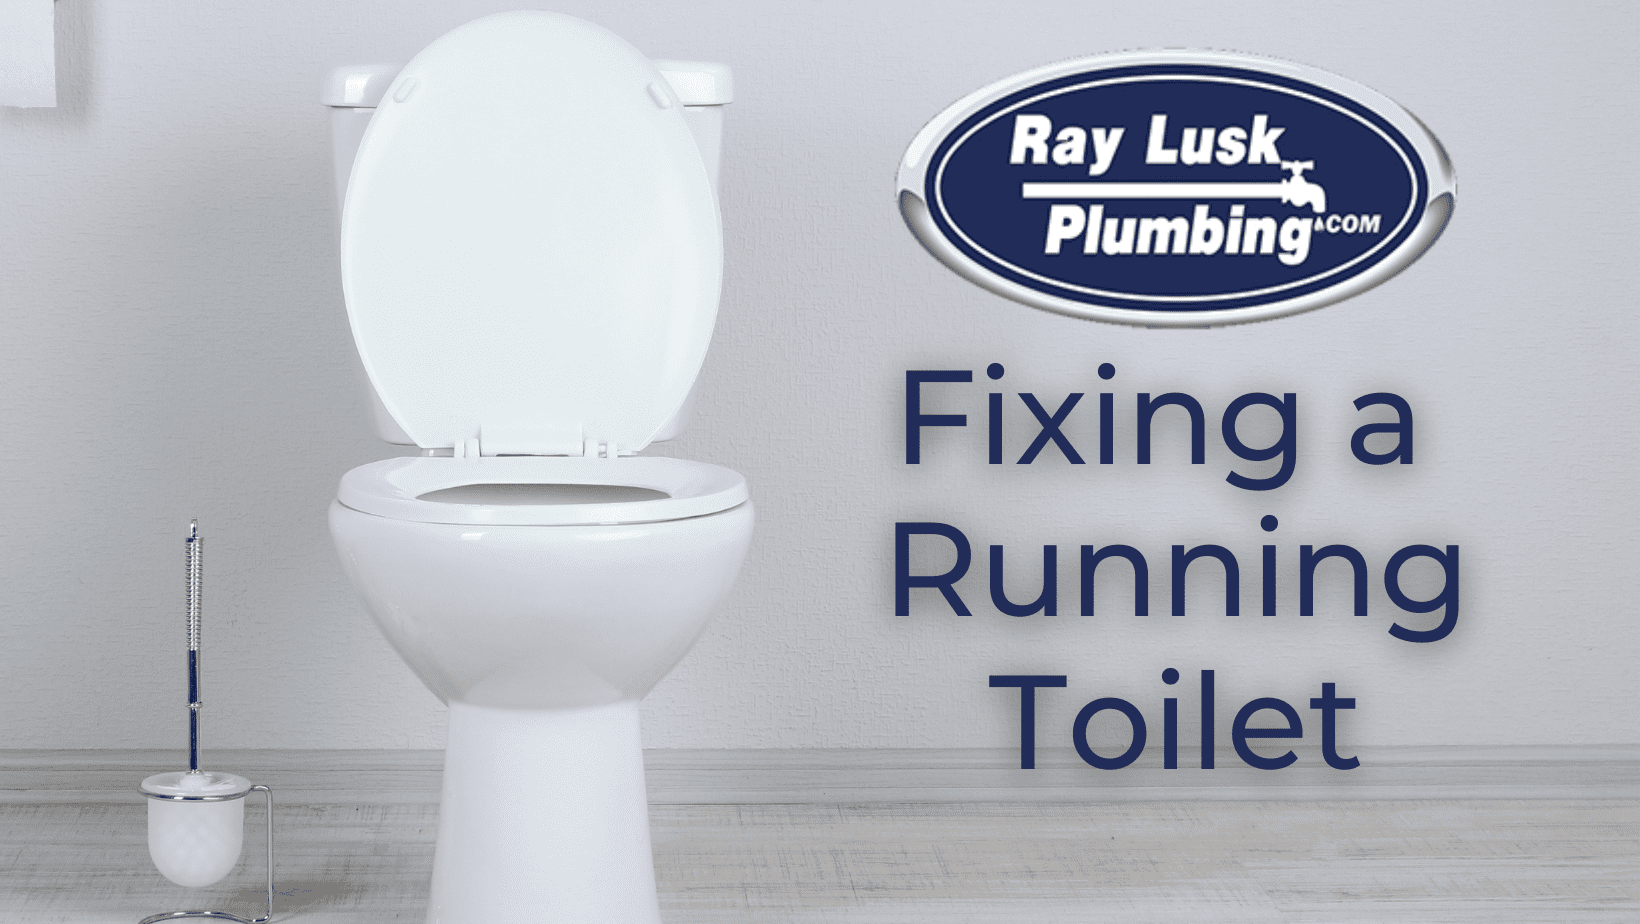 """image text reads: """"Fix a running toilet"""""""